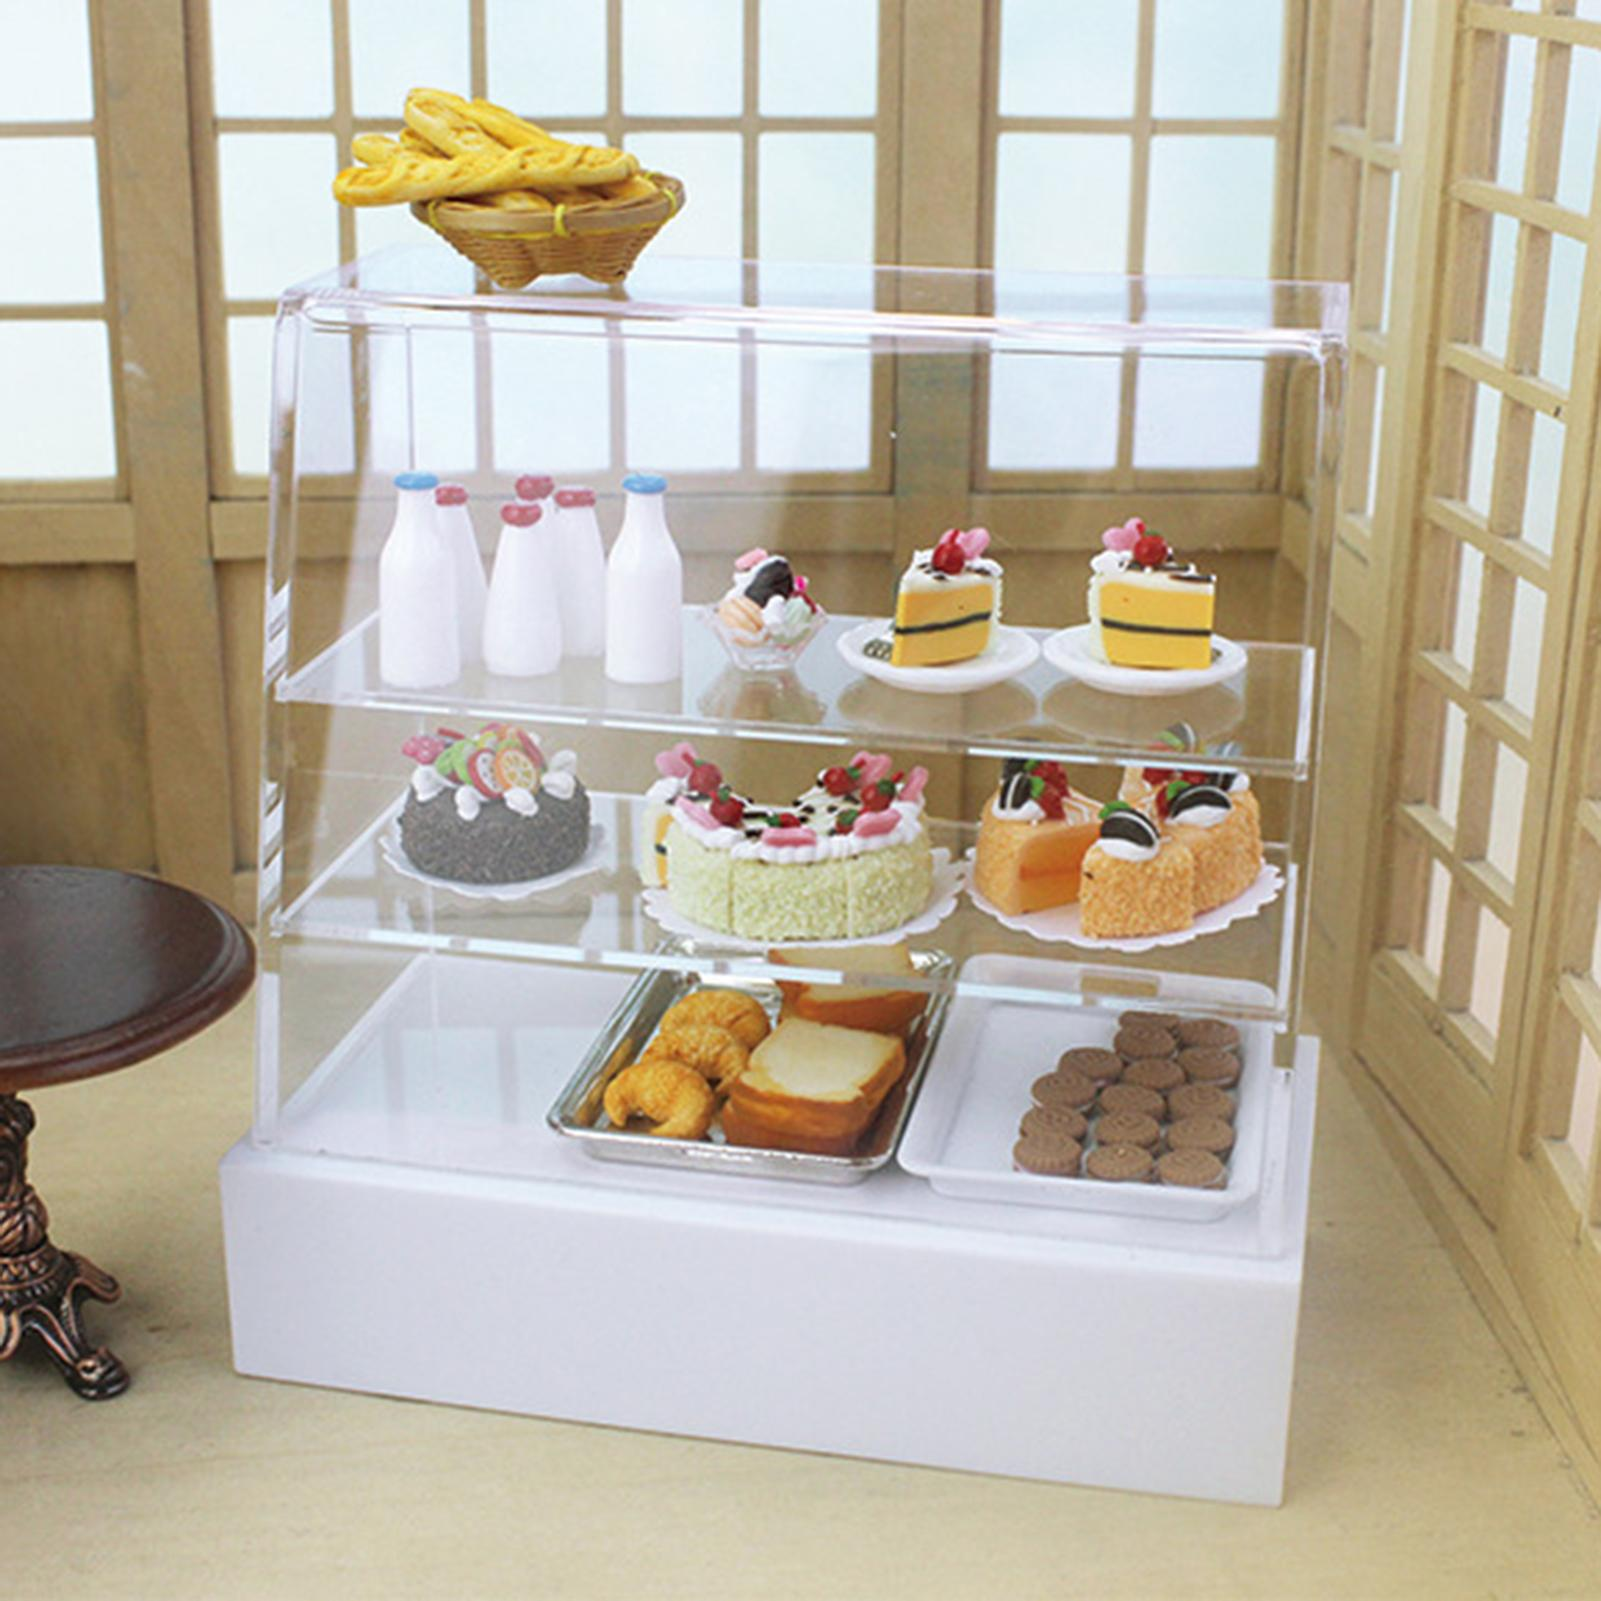 Miniature Dollhouse Toy Sliding Door Snack Cake Cabinet Model DIY Play Gift Kids Educational Toys for Children Gifts